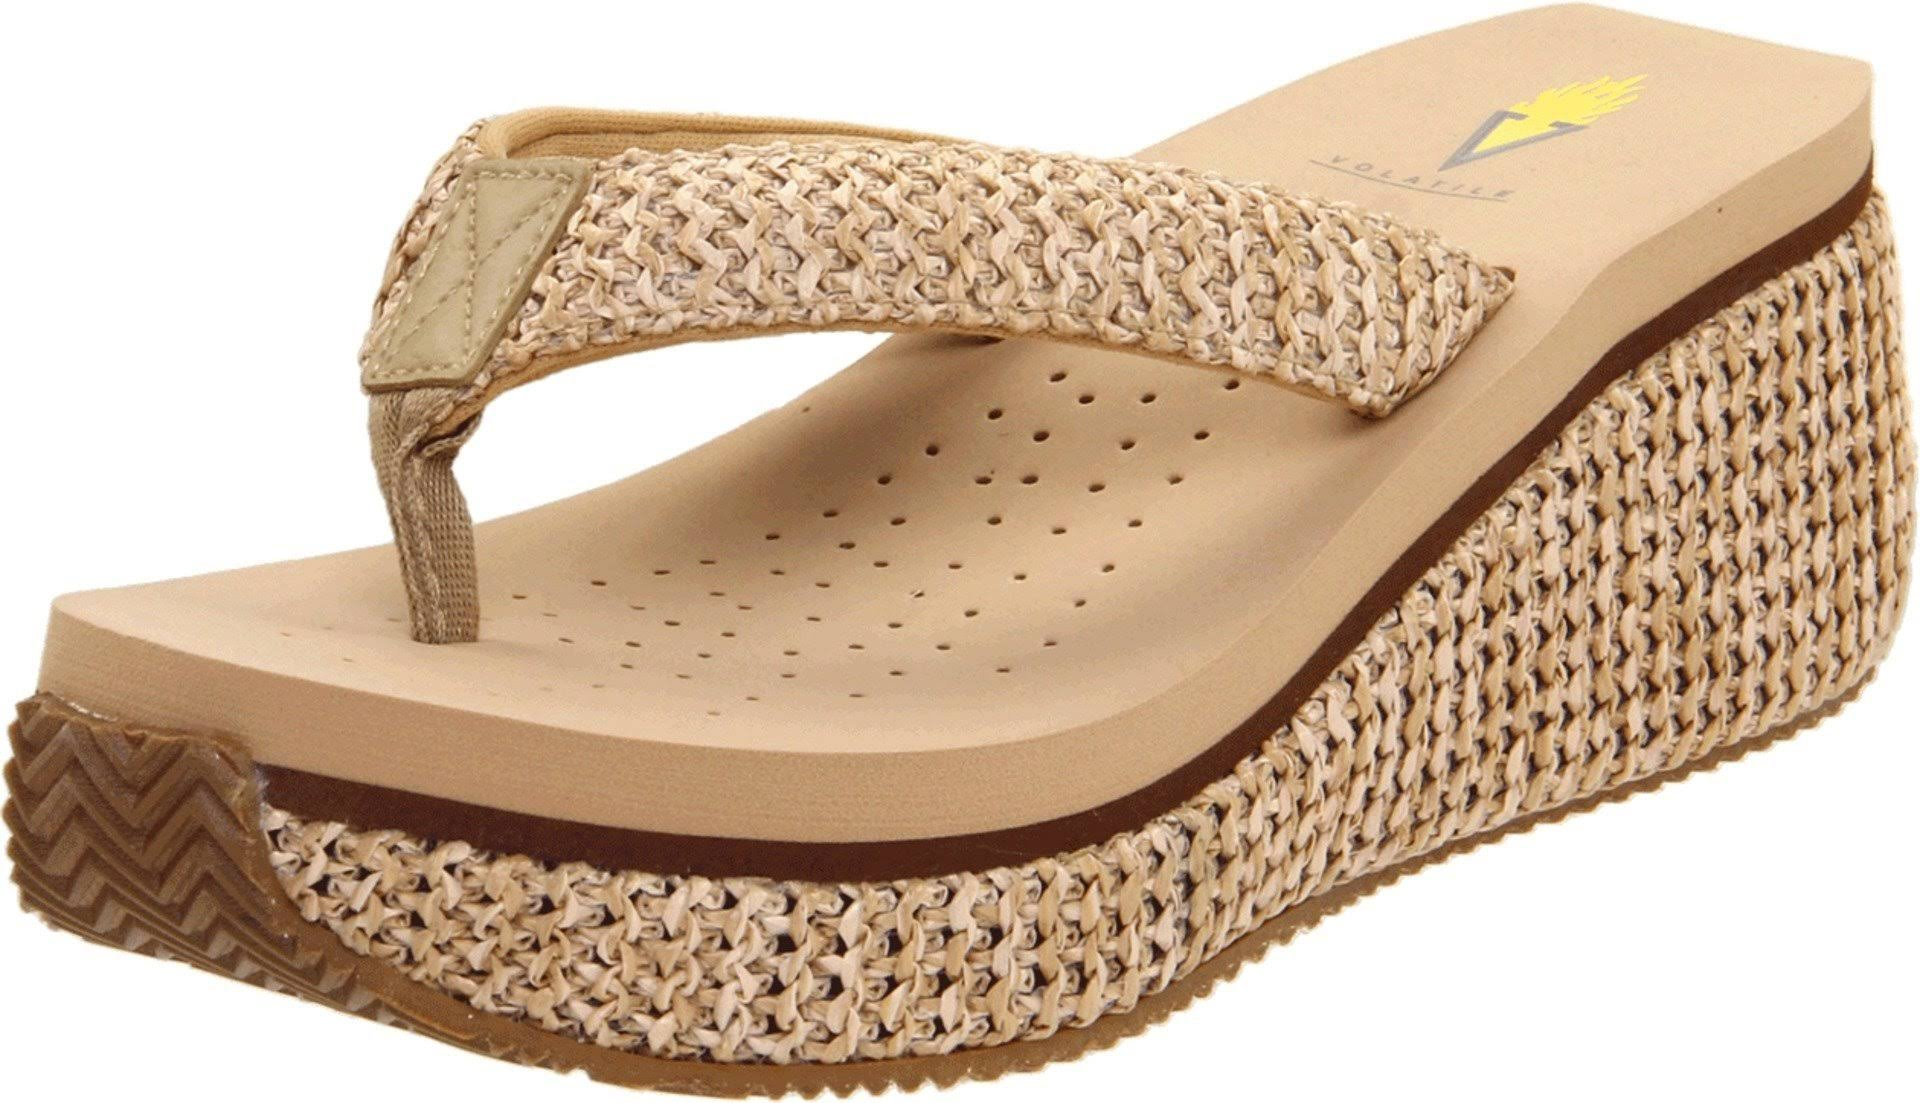 Volatile Women's Island Wedge Sandals - Natural, 8 USW